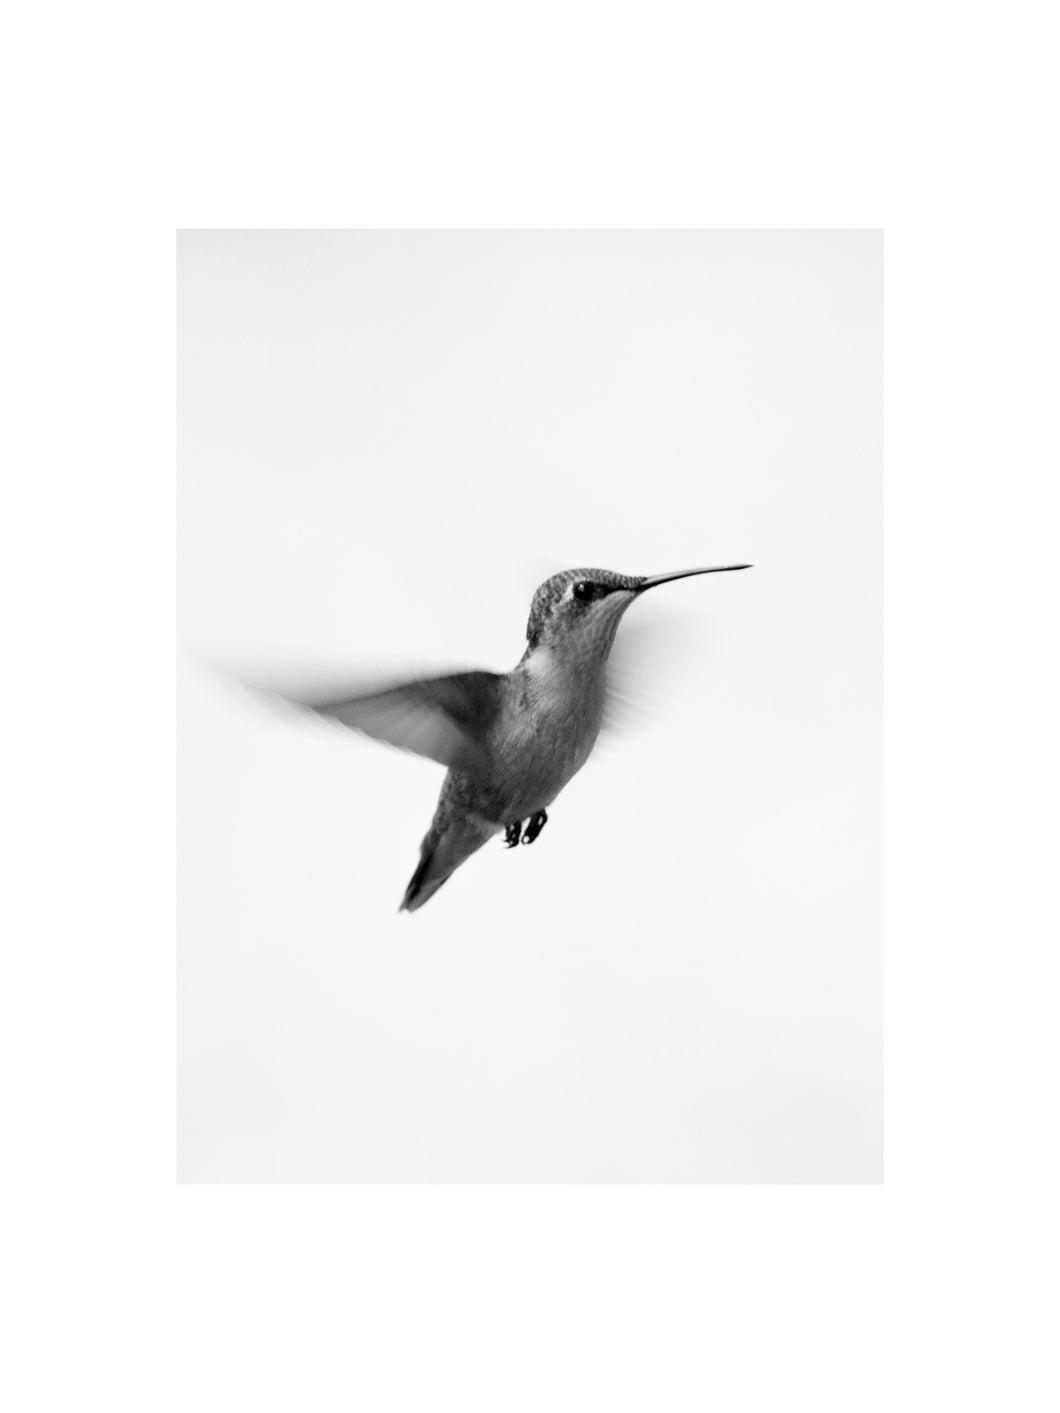 Flora the Hummingbird